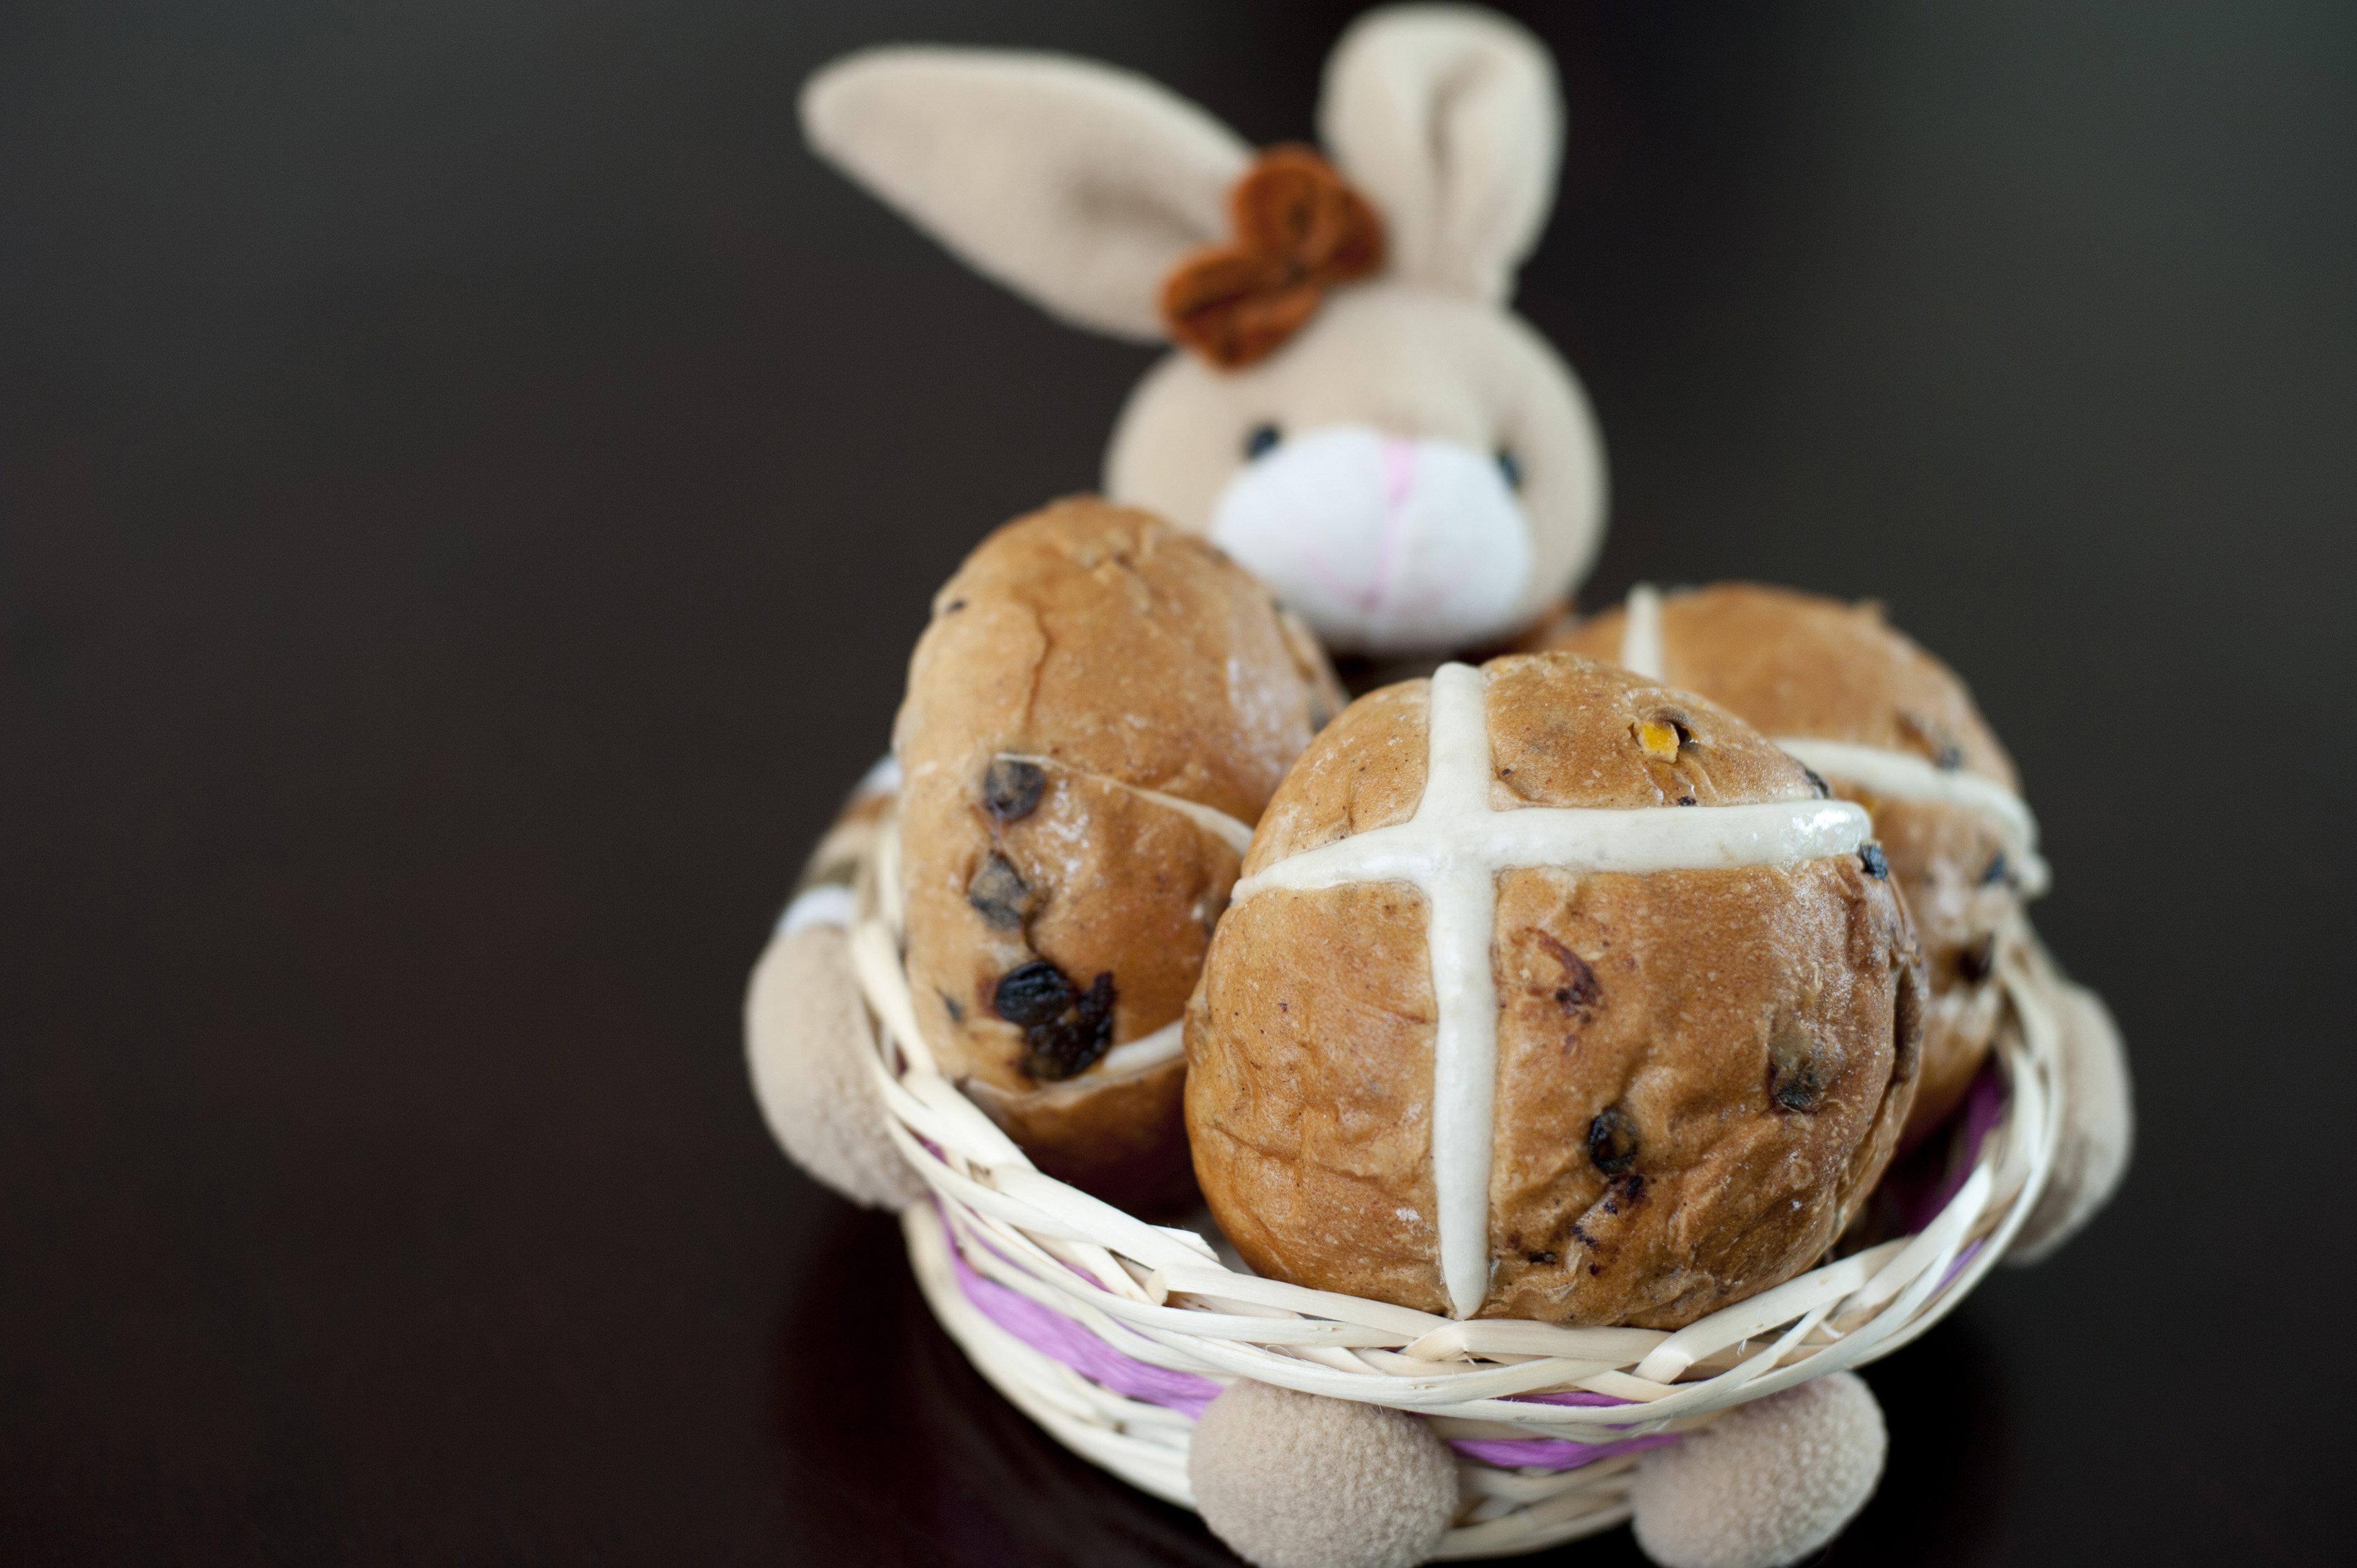 Easter baking concept with delicious fresh fruity Hot Cross Buns displayed by an Easter Bunny in a basket